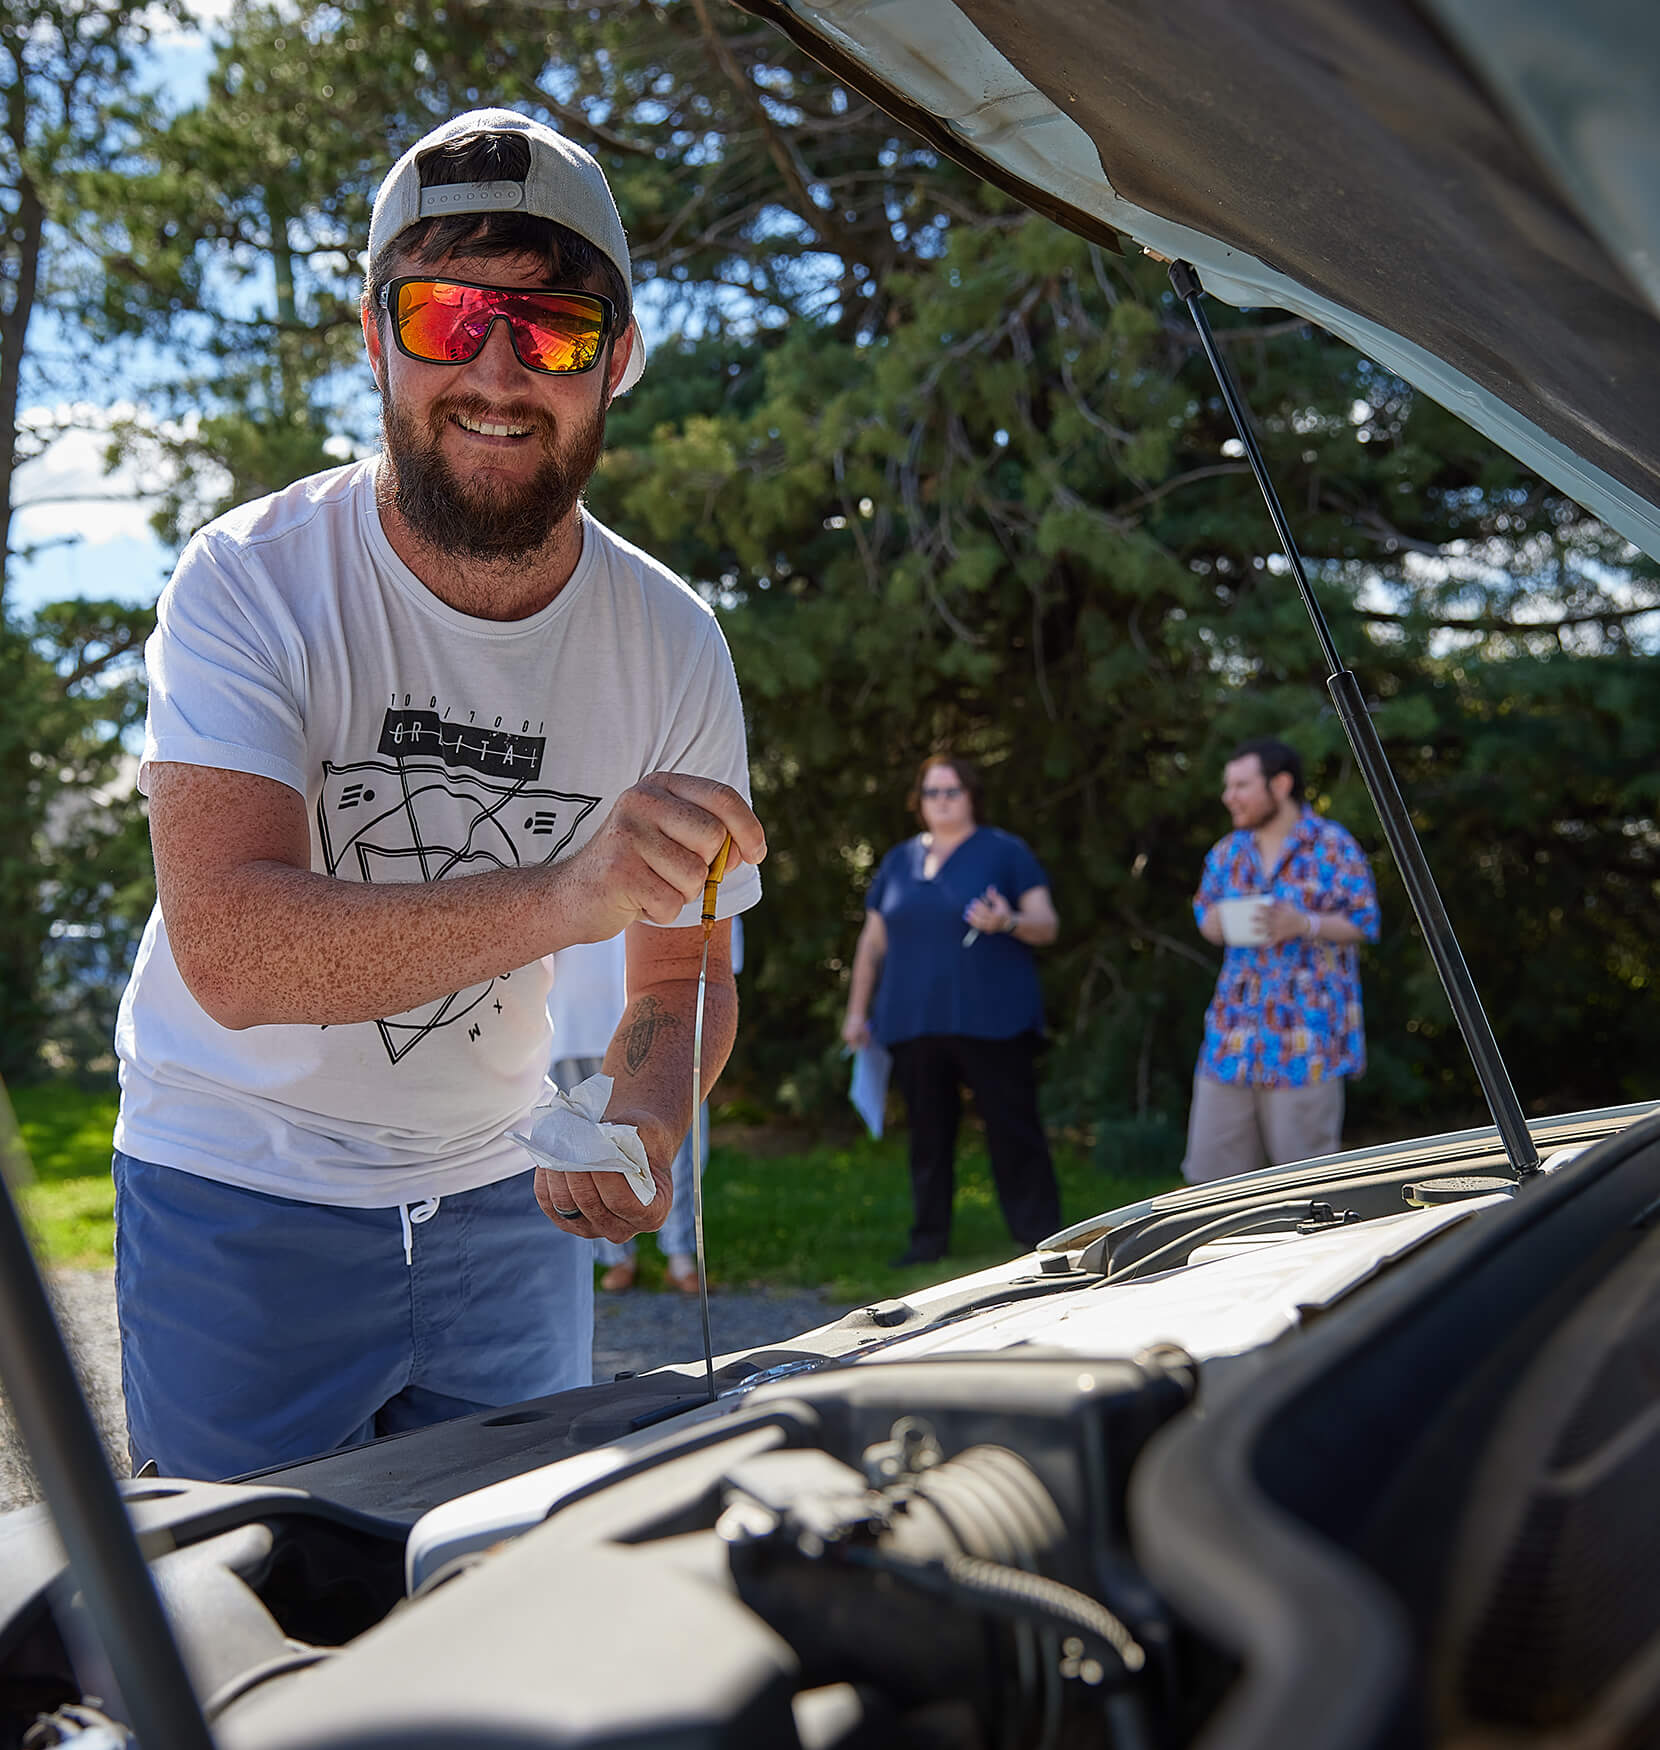 A young man with a short bears wearing polarised sunglasses and a backwards cap. He is smiling and checking the oil in a car engine.